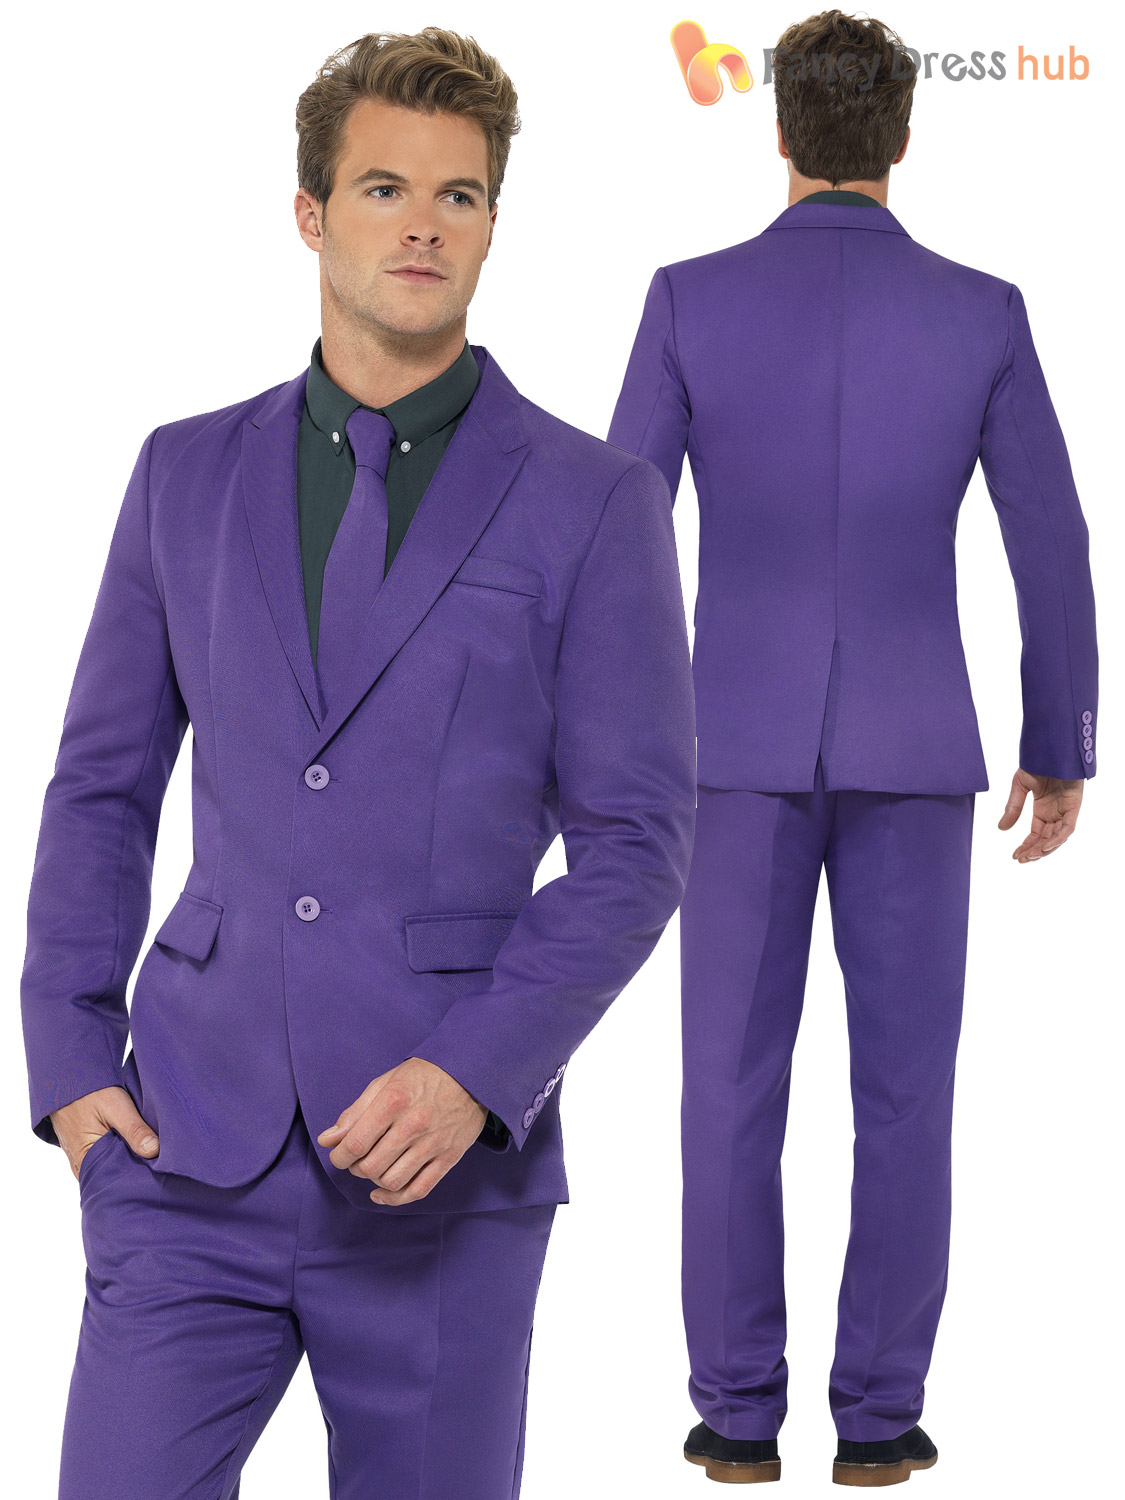 mens stand out suit stag do fancy dress party outfit funny